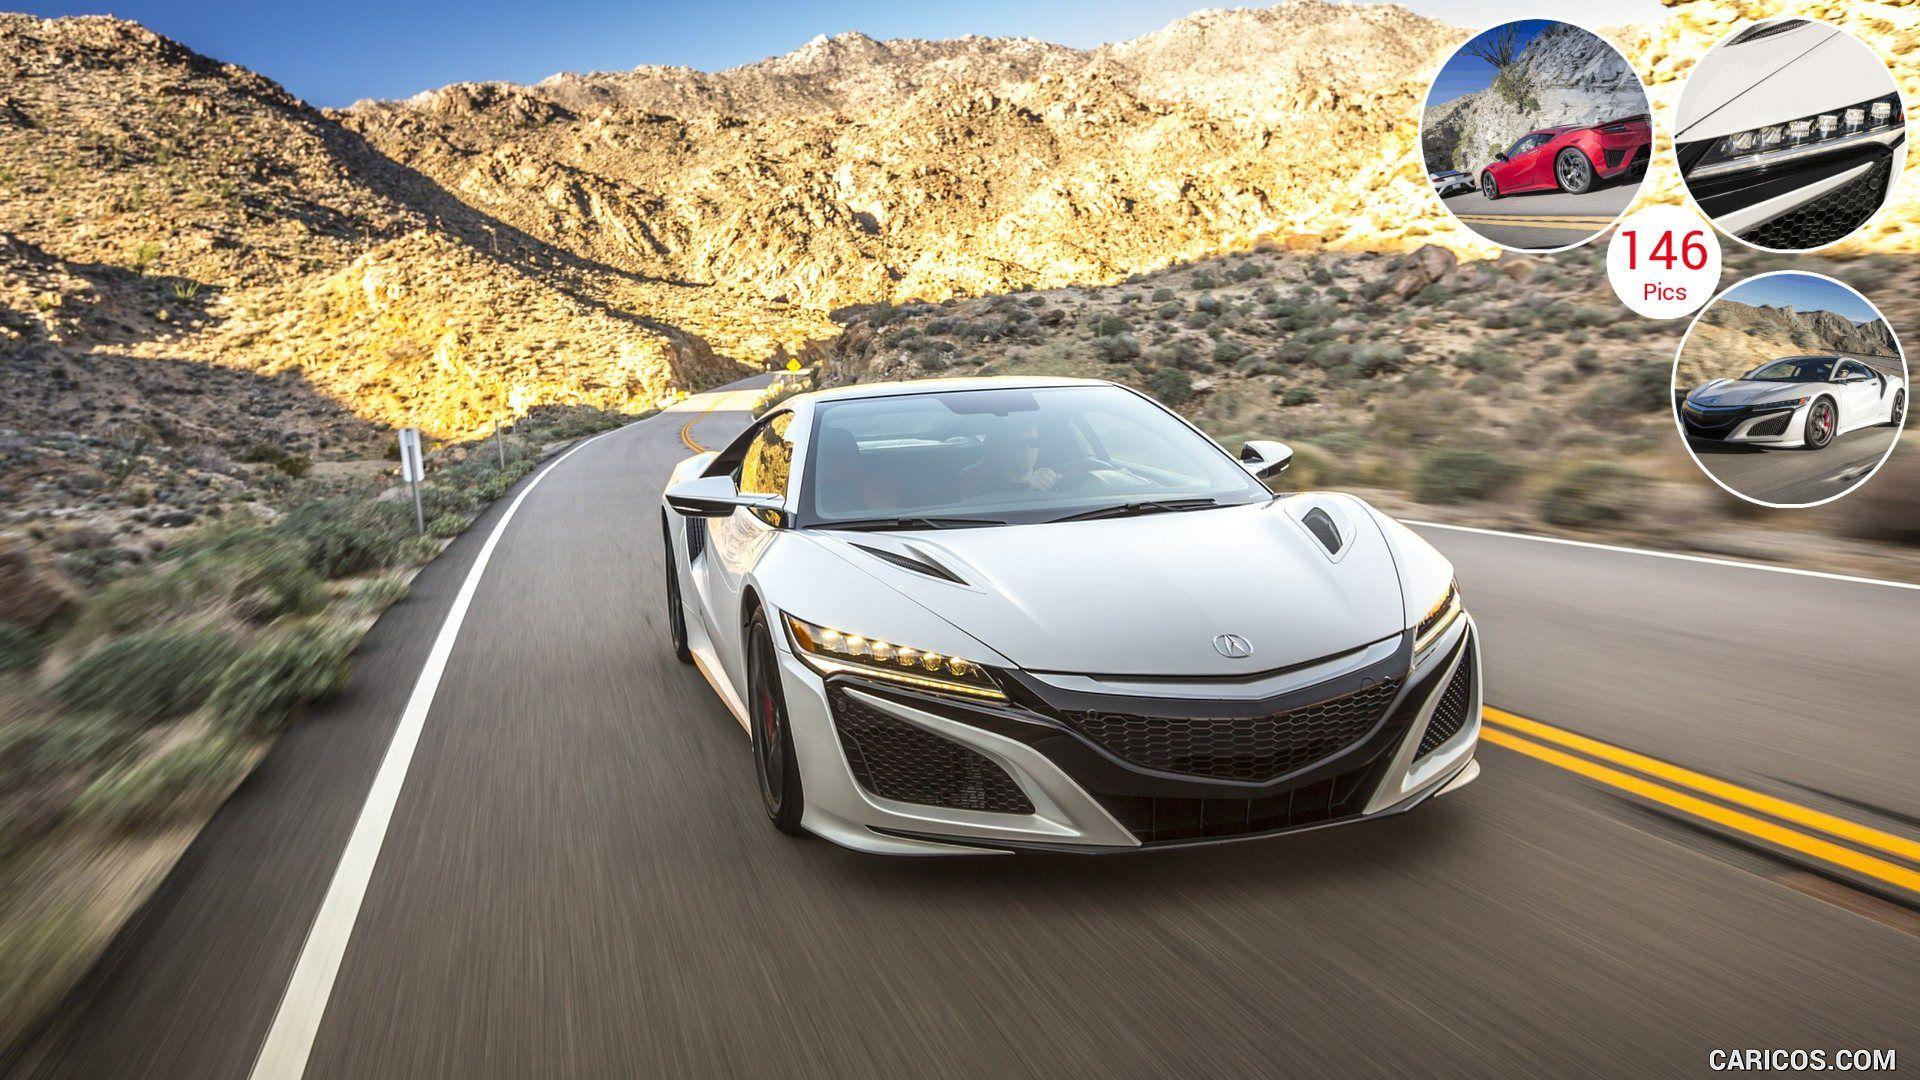 2017 Acura NSX Wallpapers - Wallpaper Cave Acura Nsx Wallpaper